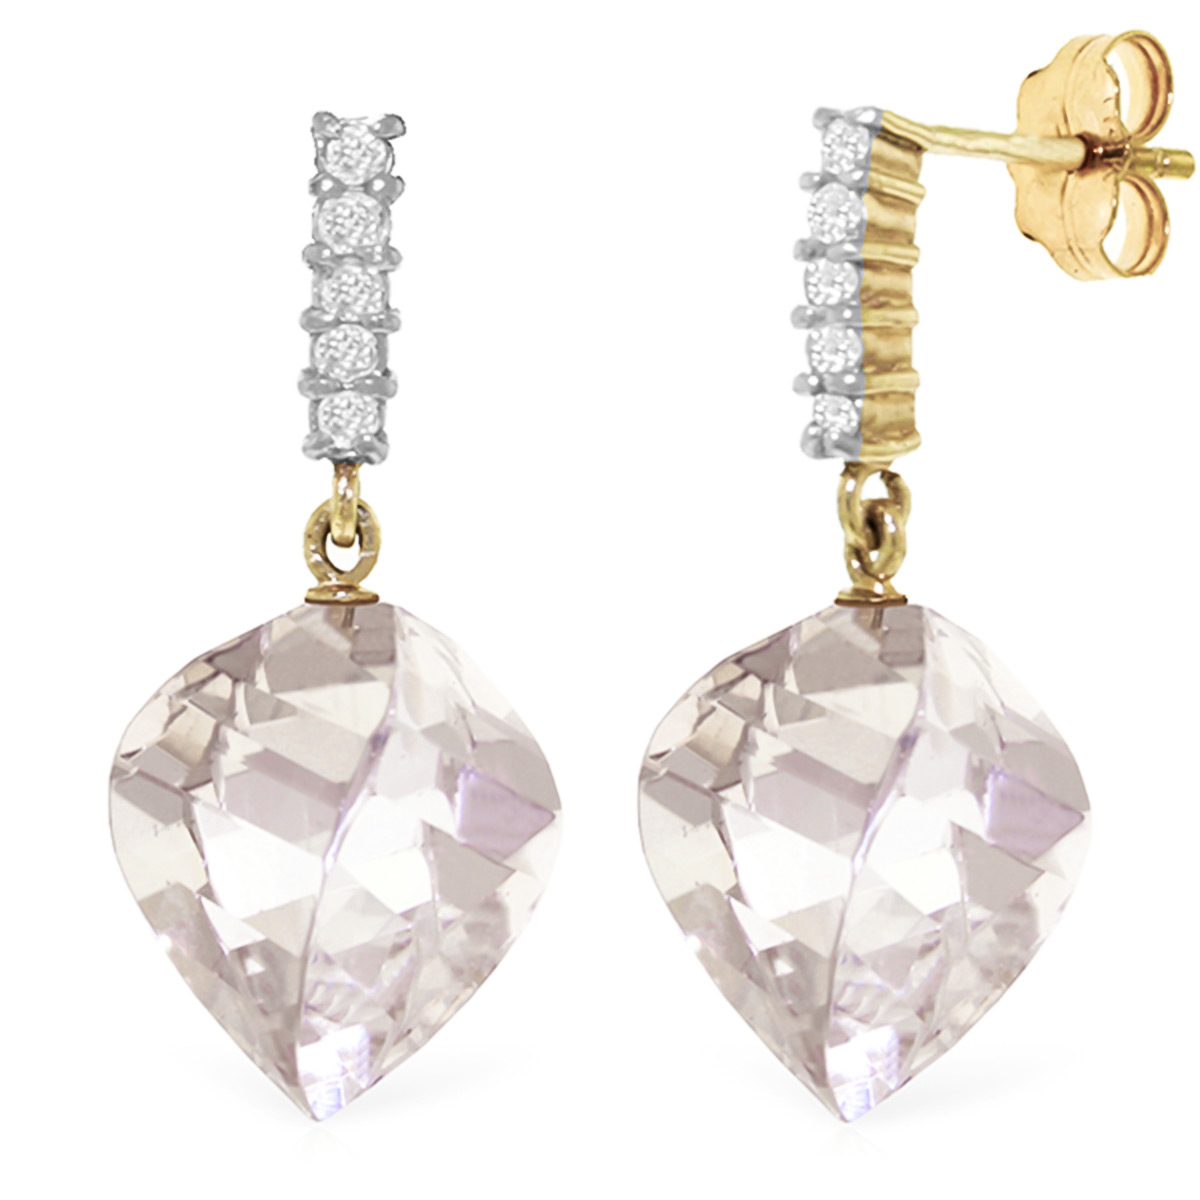 White Topaz and Diamond Stud Earrings 25.6ctw in 9ct Gold